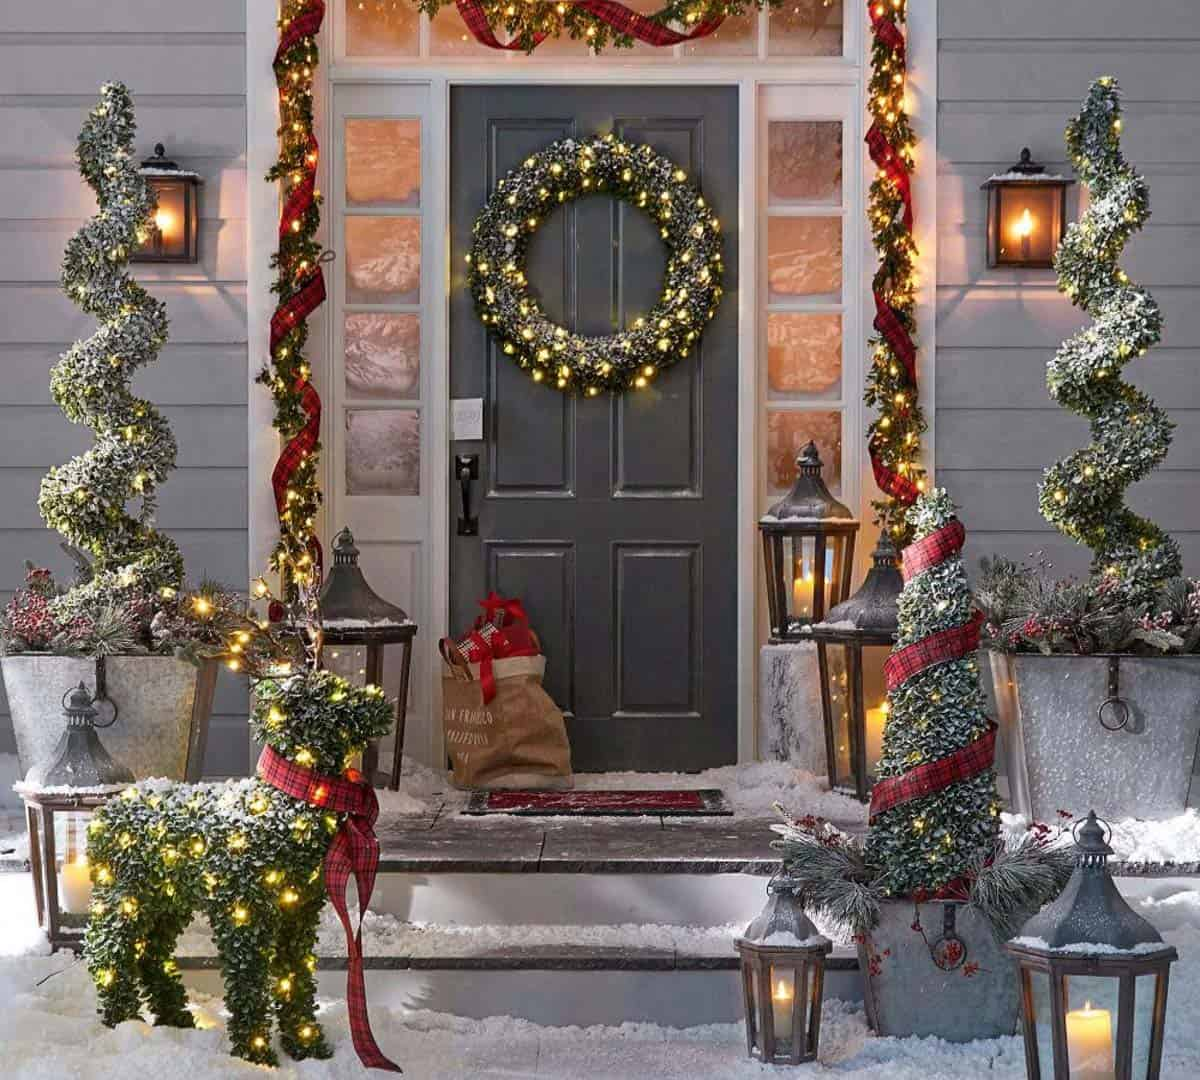 Holiday Home Design Ideas: 28 Wonderful Christmas Decorating Ideas For Magical